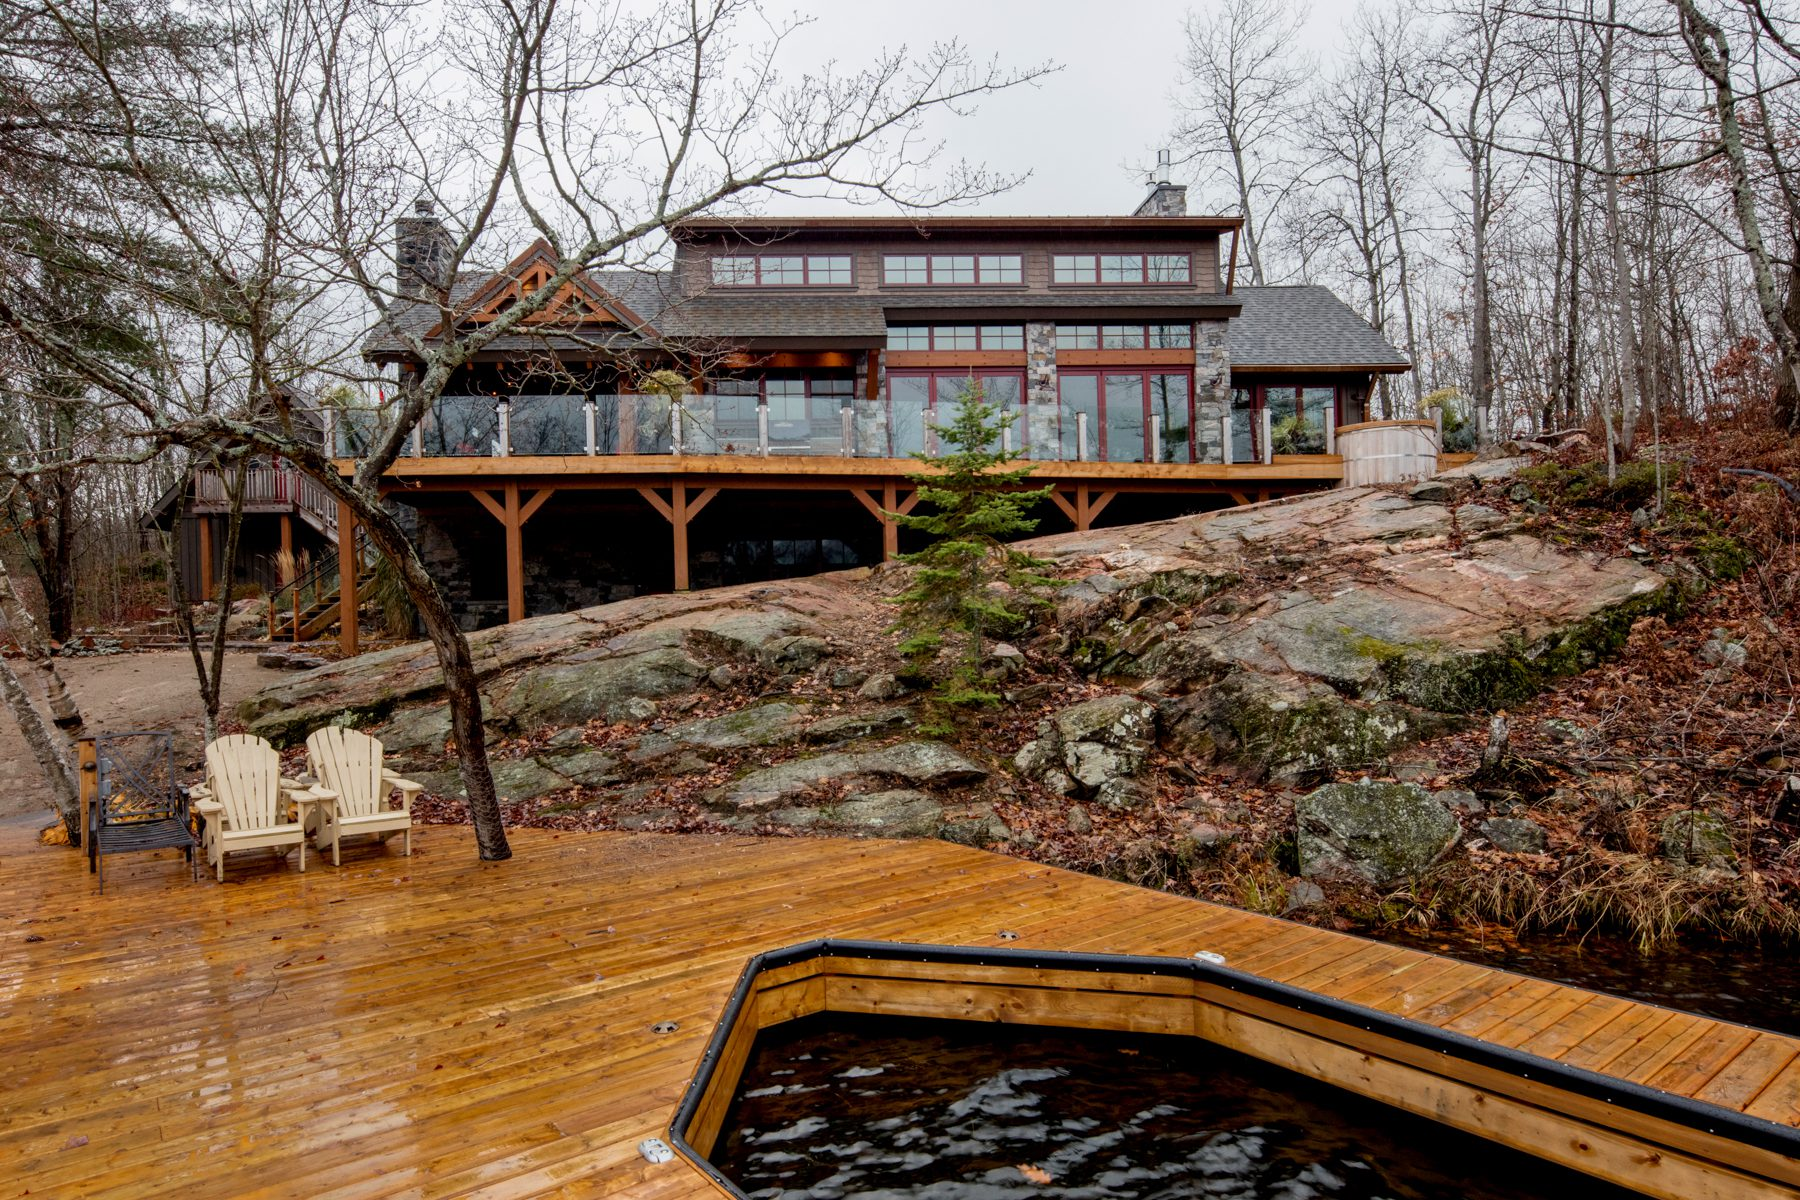 Normerica Timber Frame, Exterior, Cottage, Rear View, Lake View, Dock